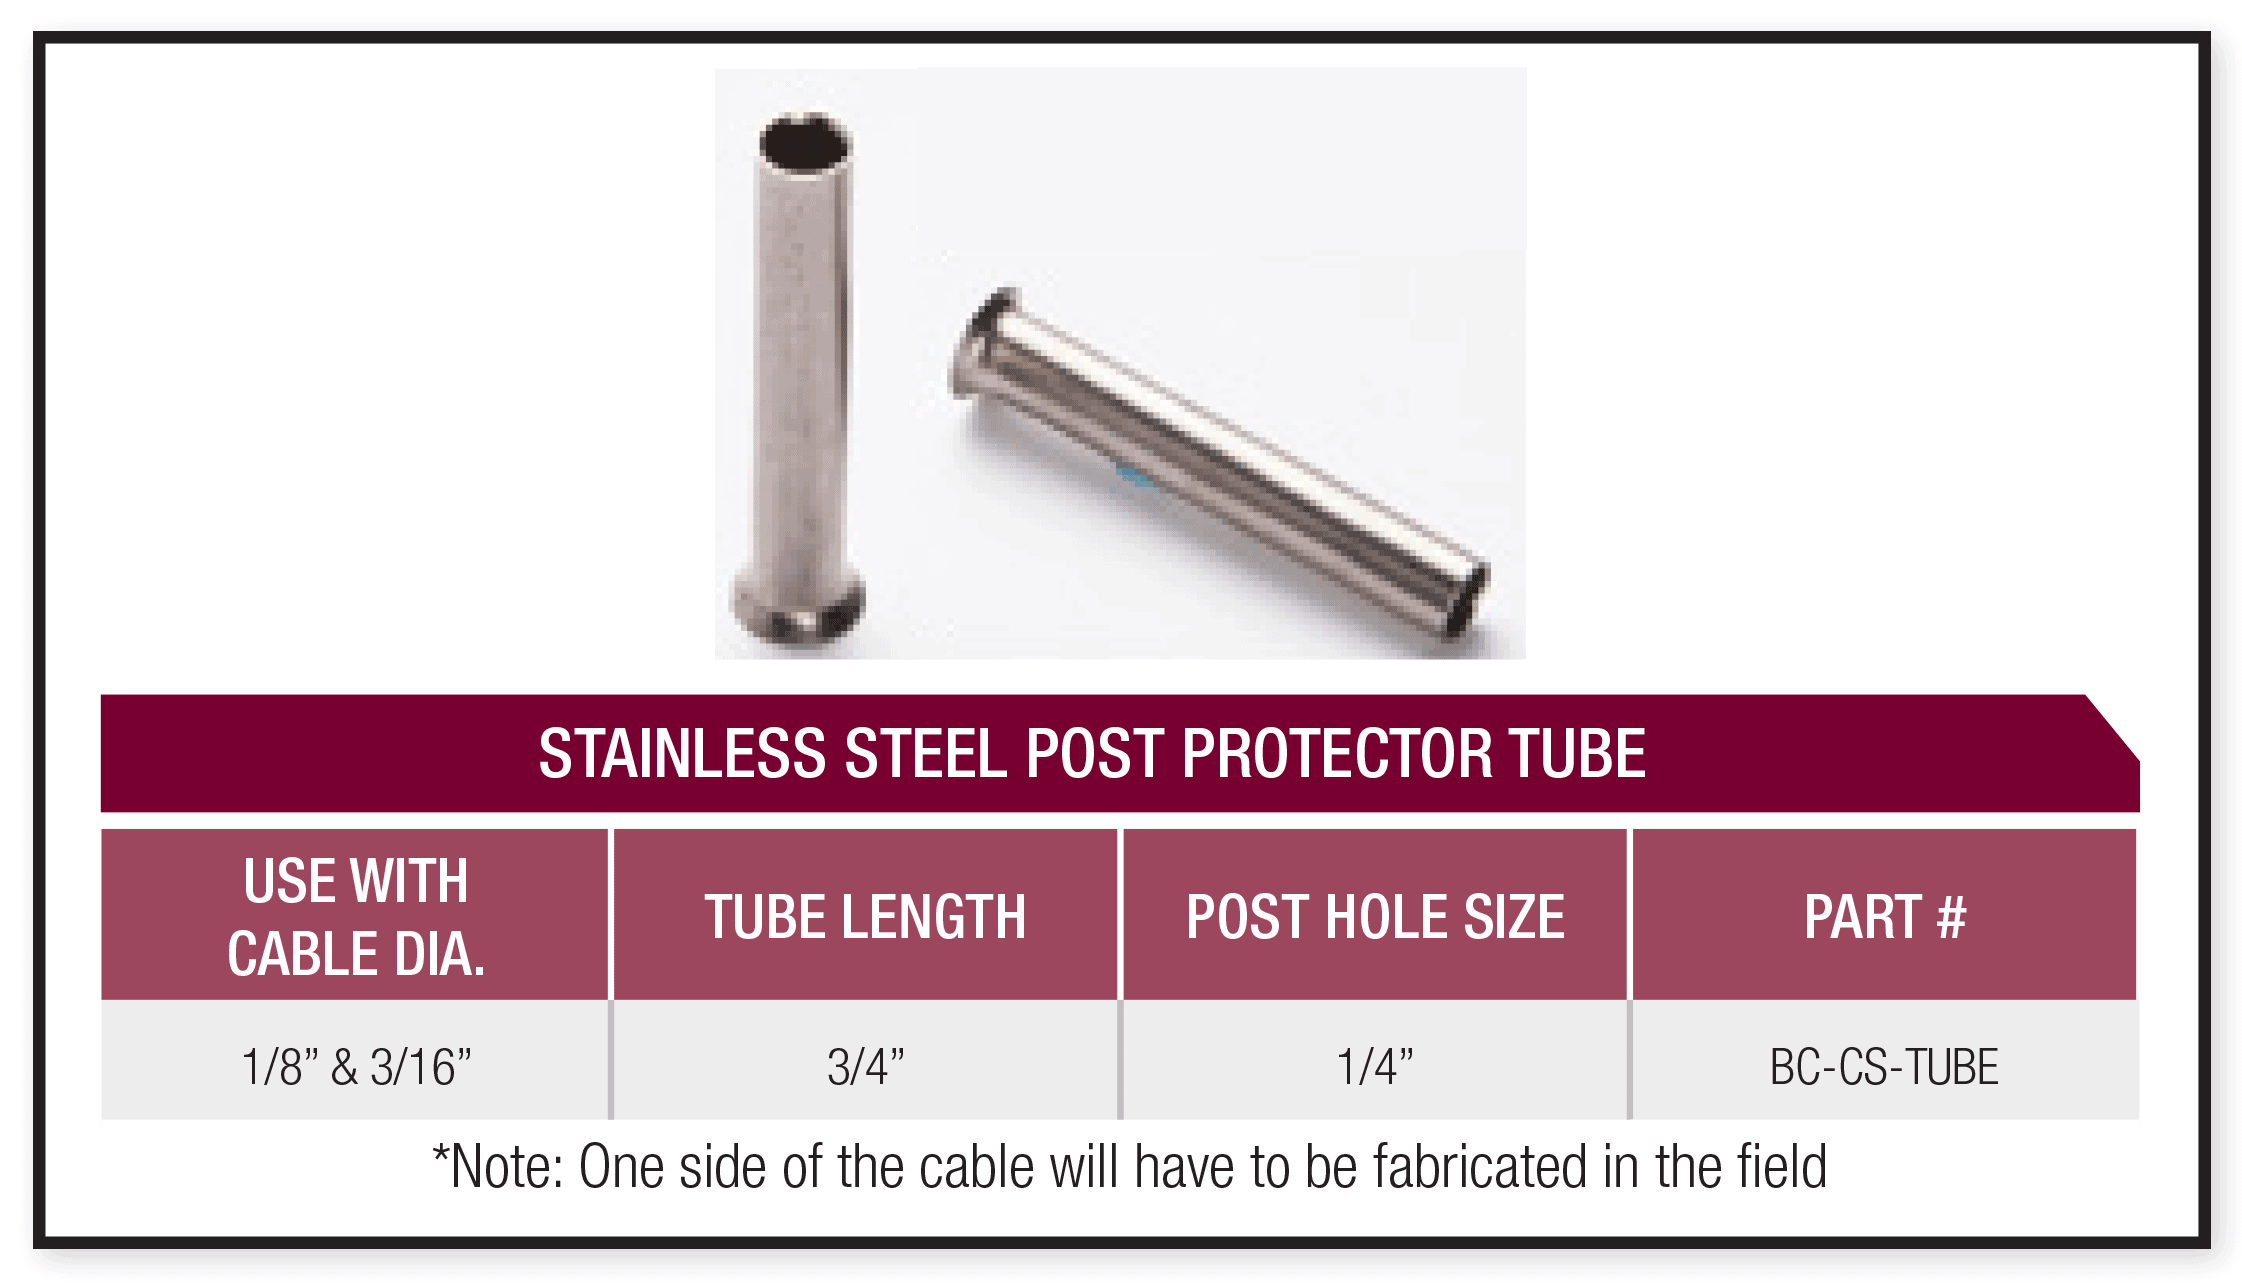 stainless steel post protector tube